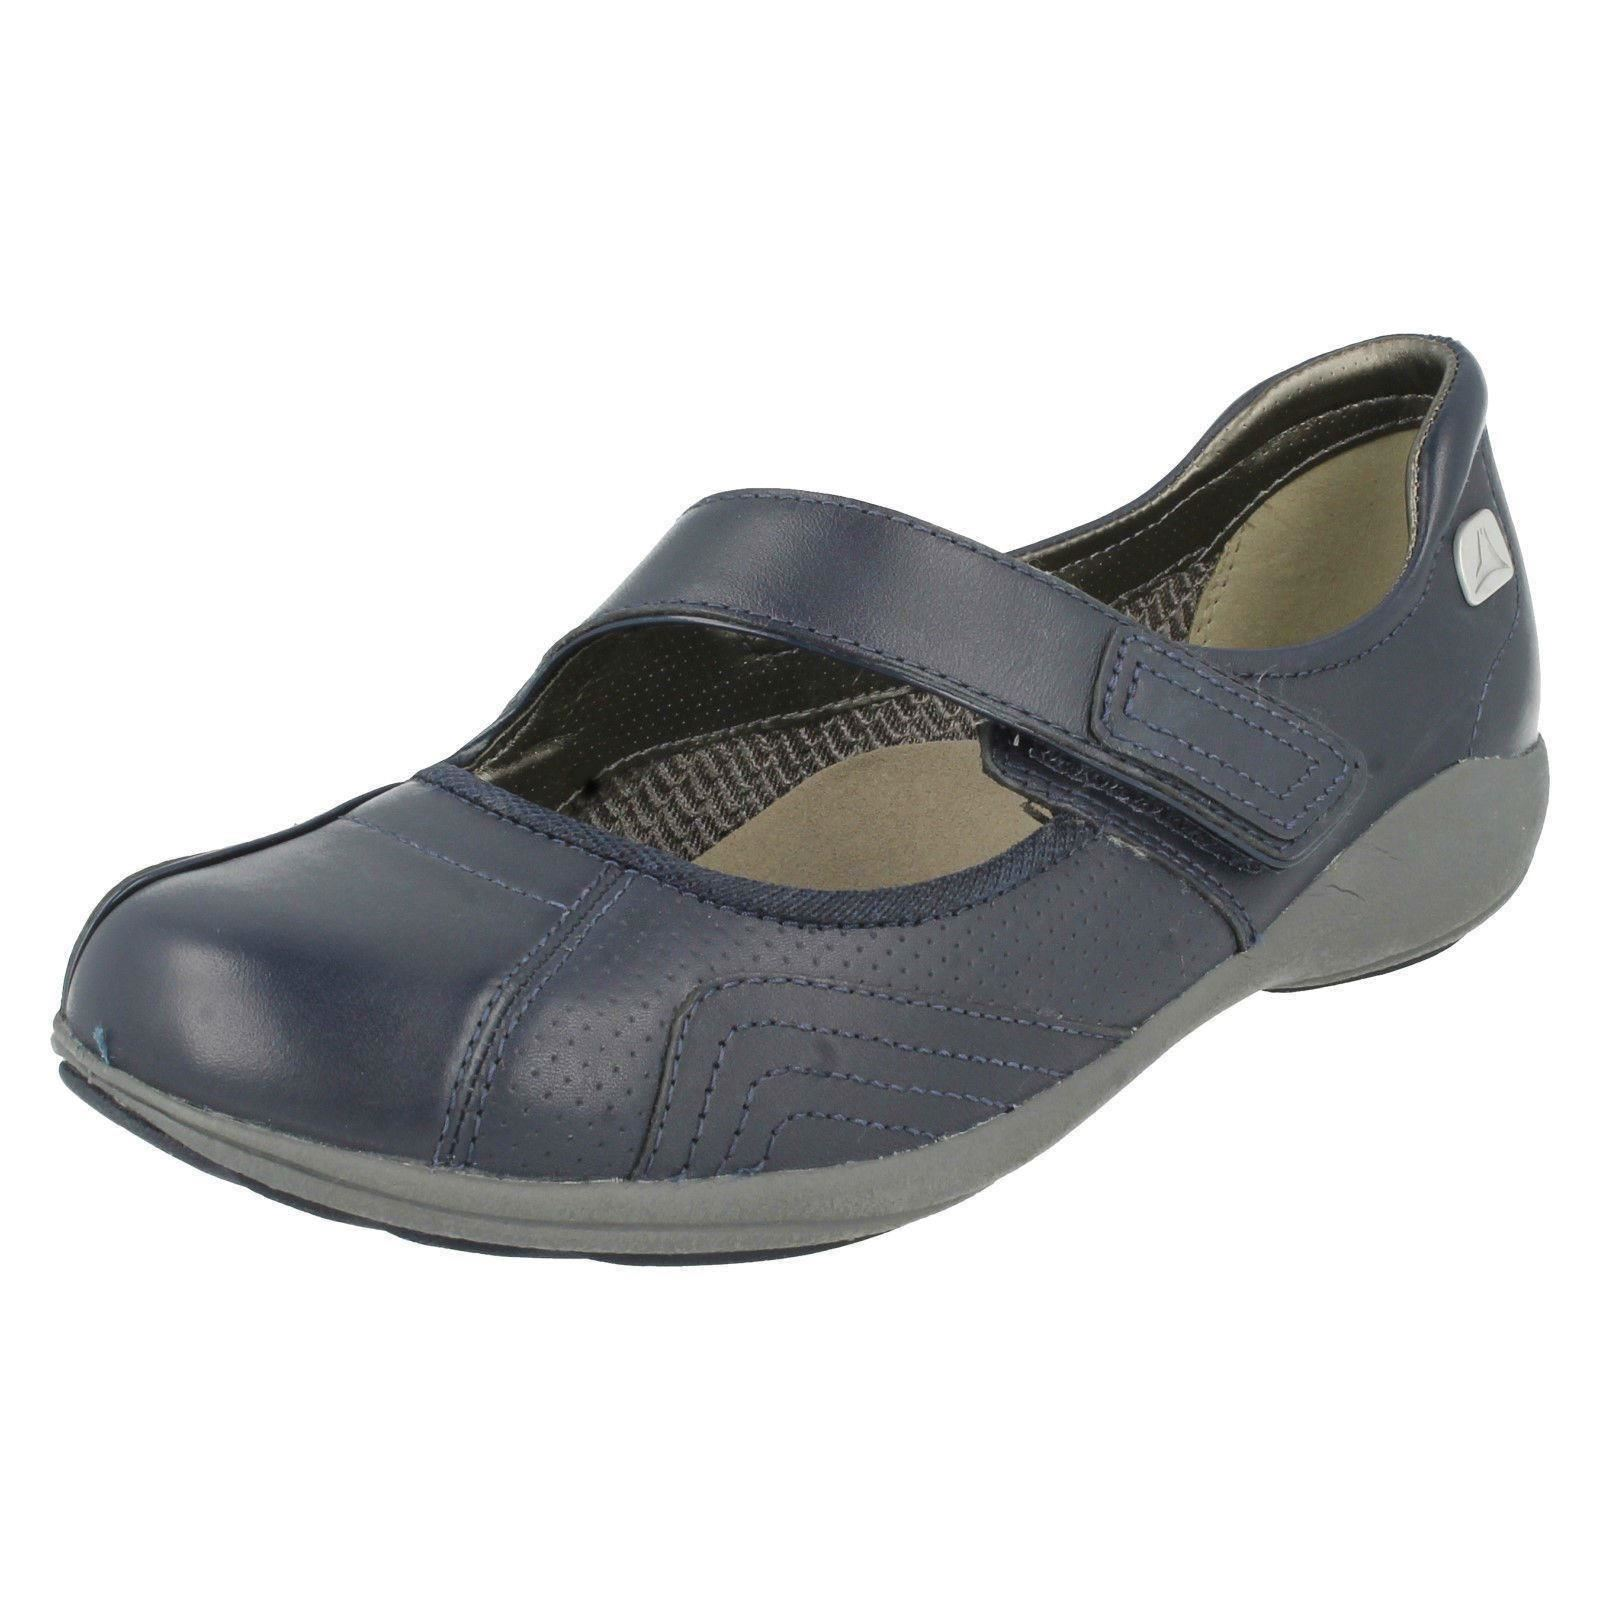 Indigo Shoes By Clarks Sale